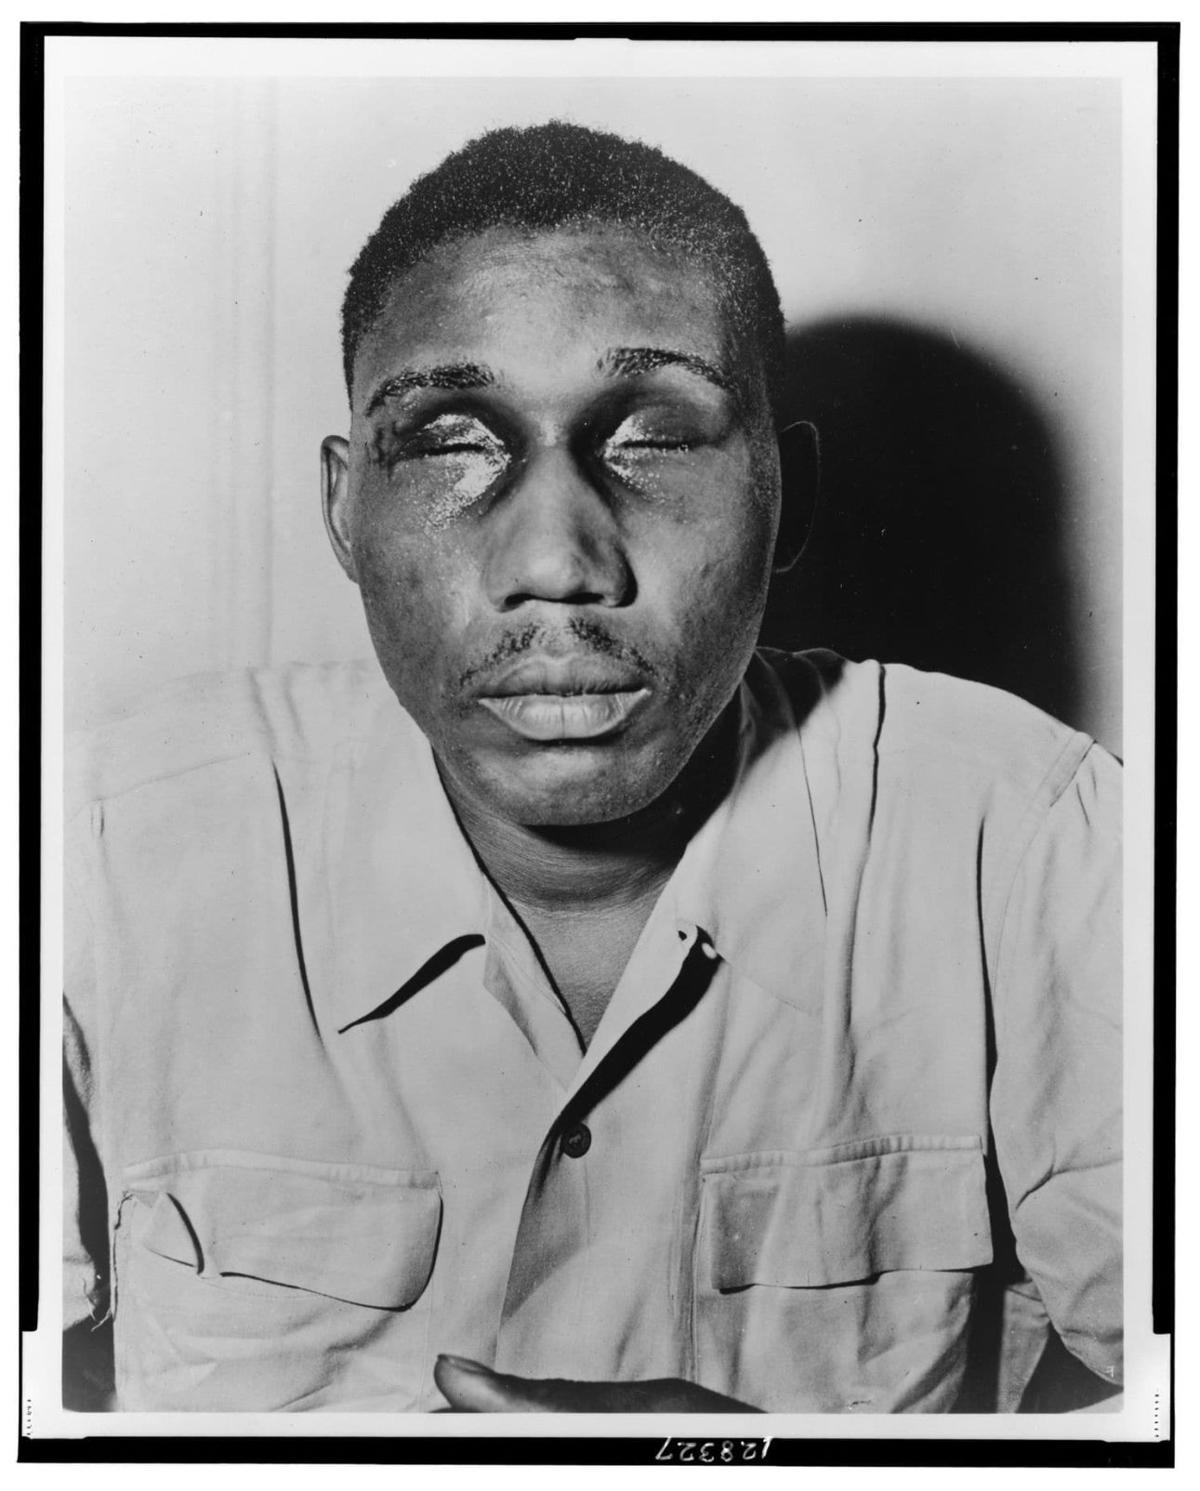 Column a cop gouged out a black vets eyes 73 years later the sc town confronts it